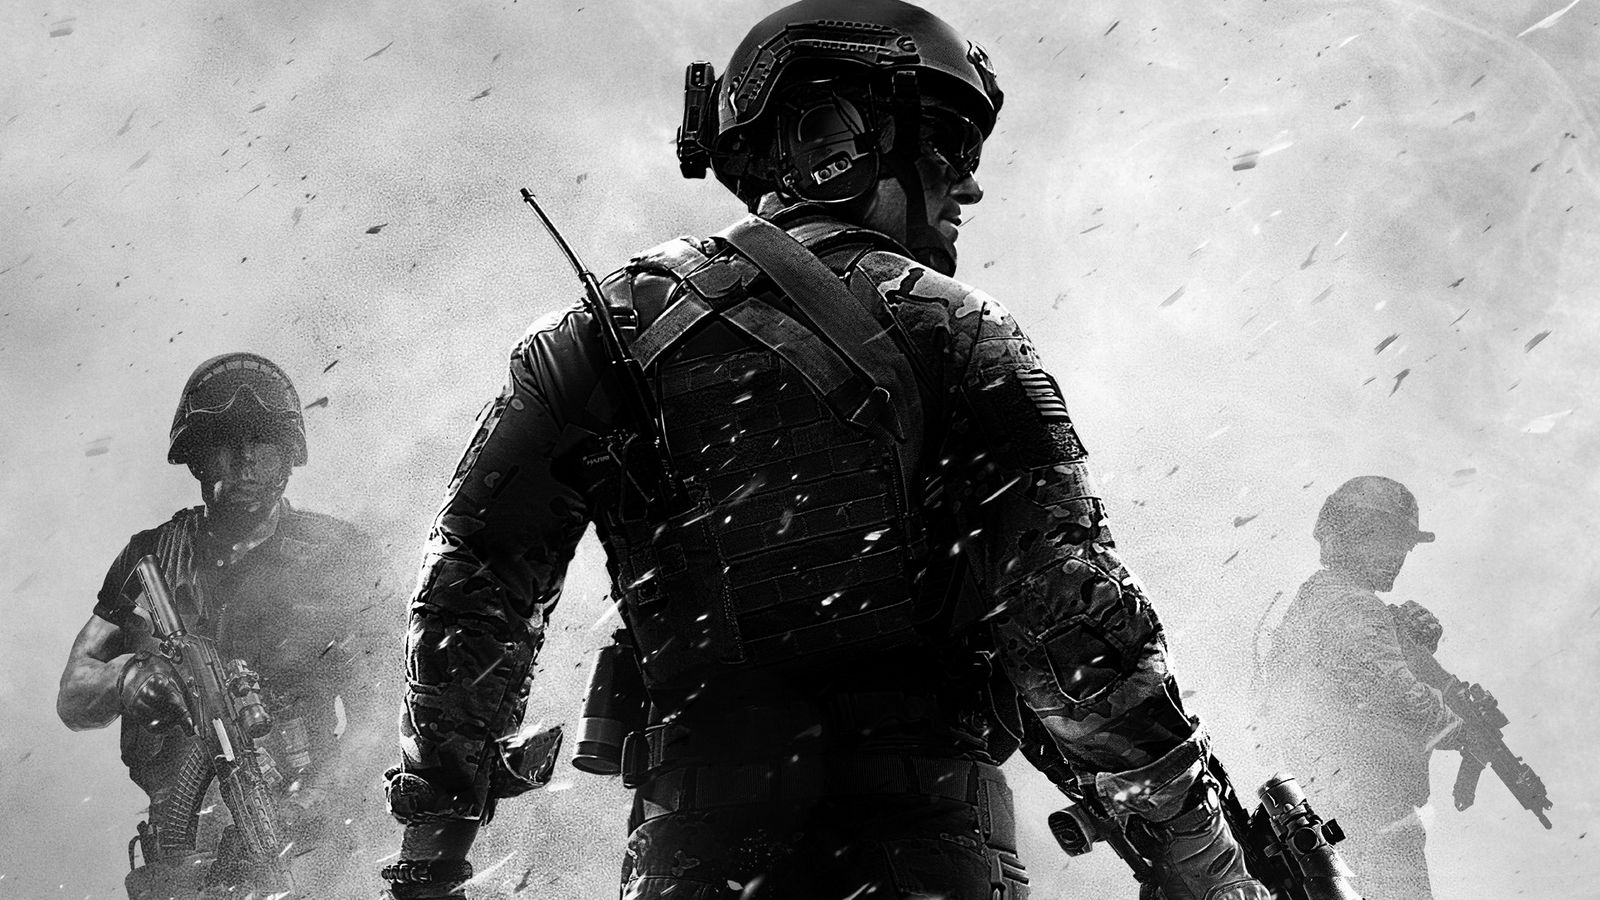 Call Of Duty best Wallpaper